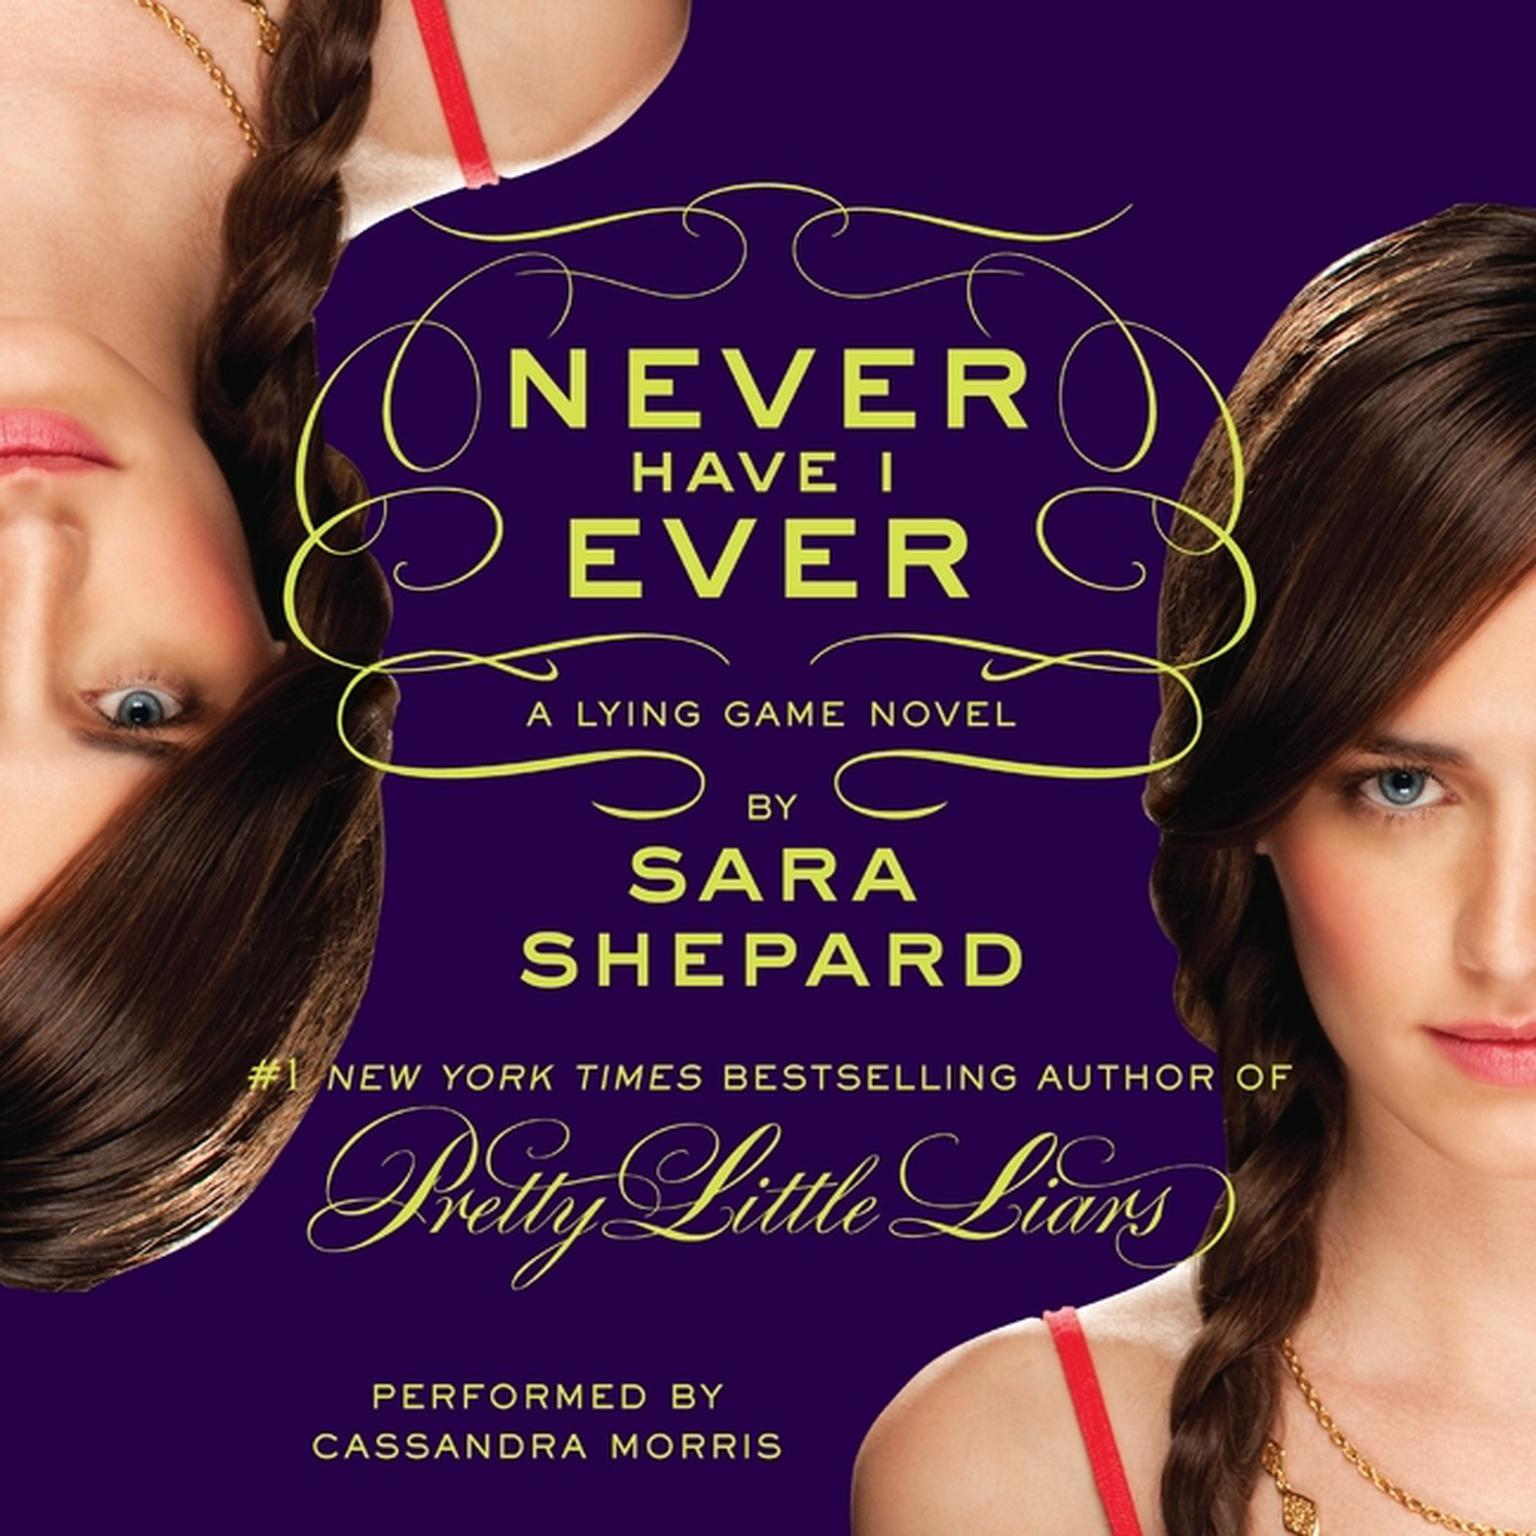 Printable The Lying Game #2: Never Have I Ever Audiobook Cover Art